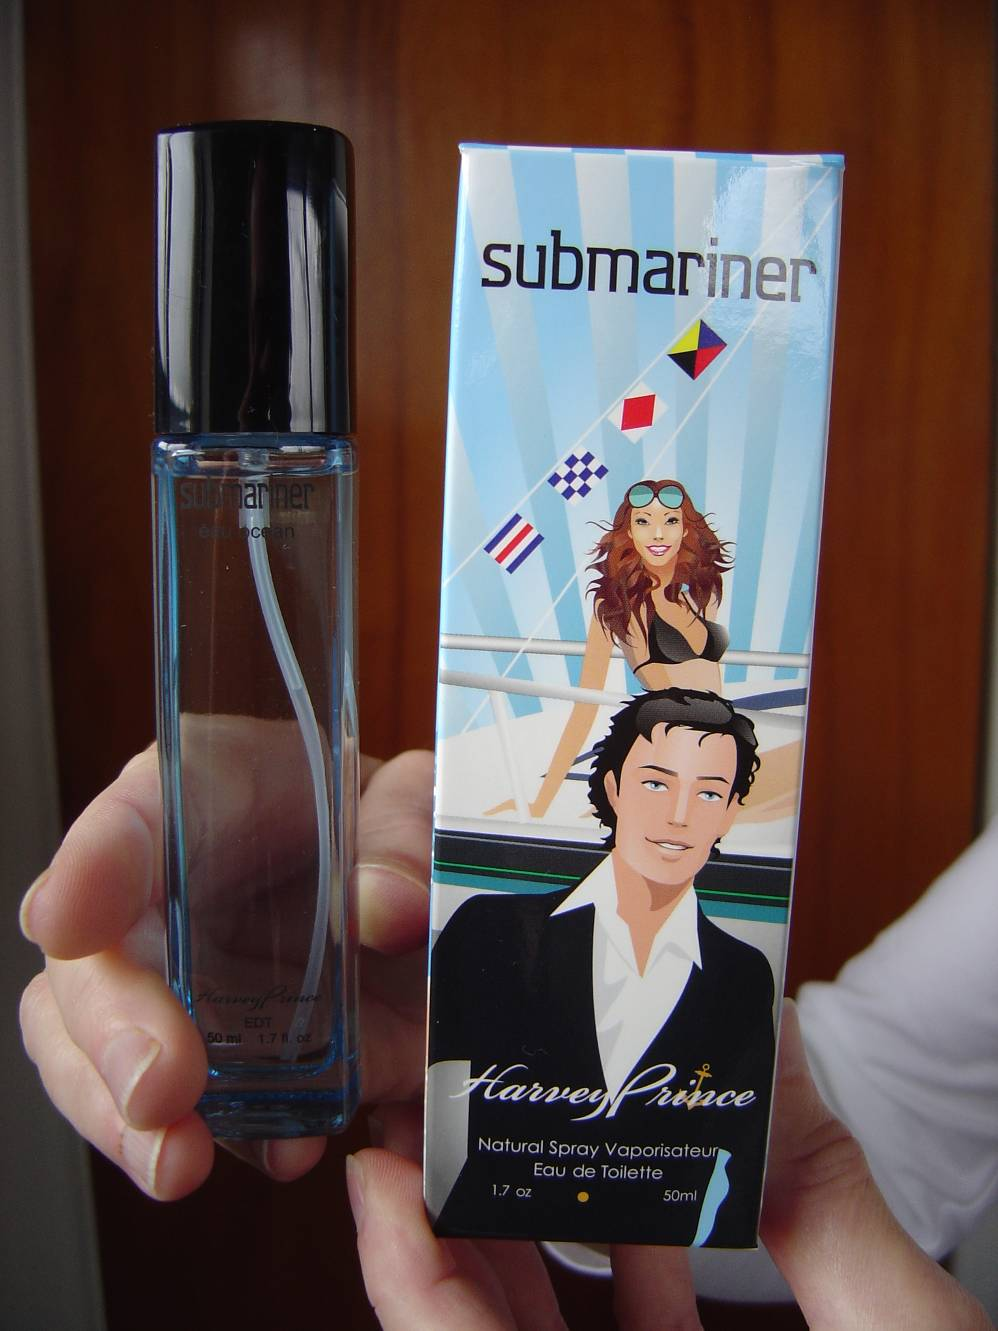 Harvey Prince Submariner fragrance.jpeg